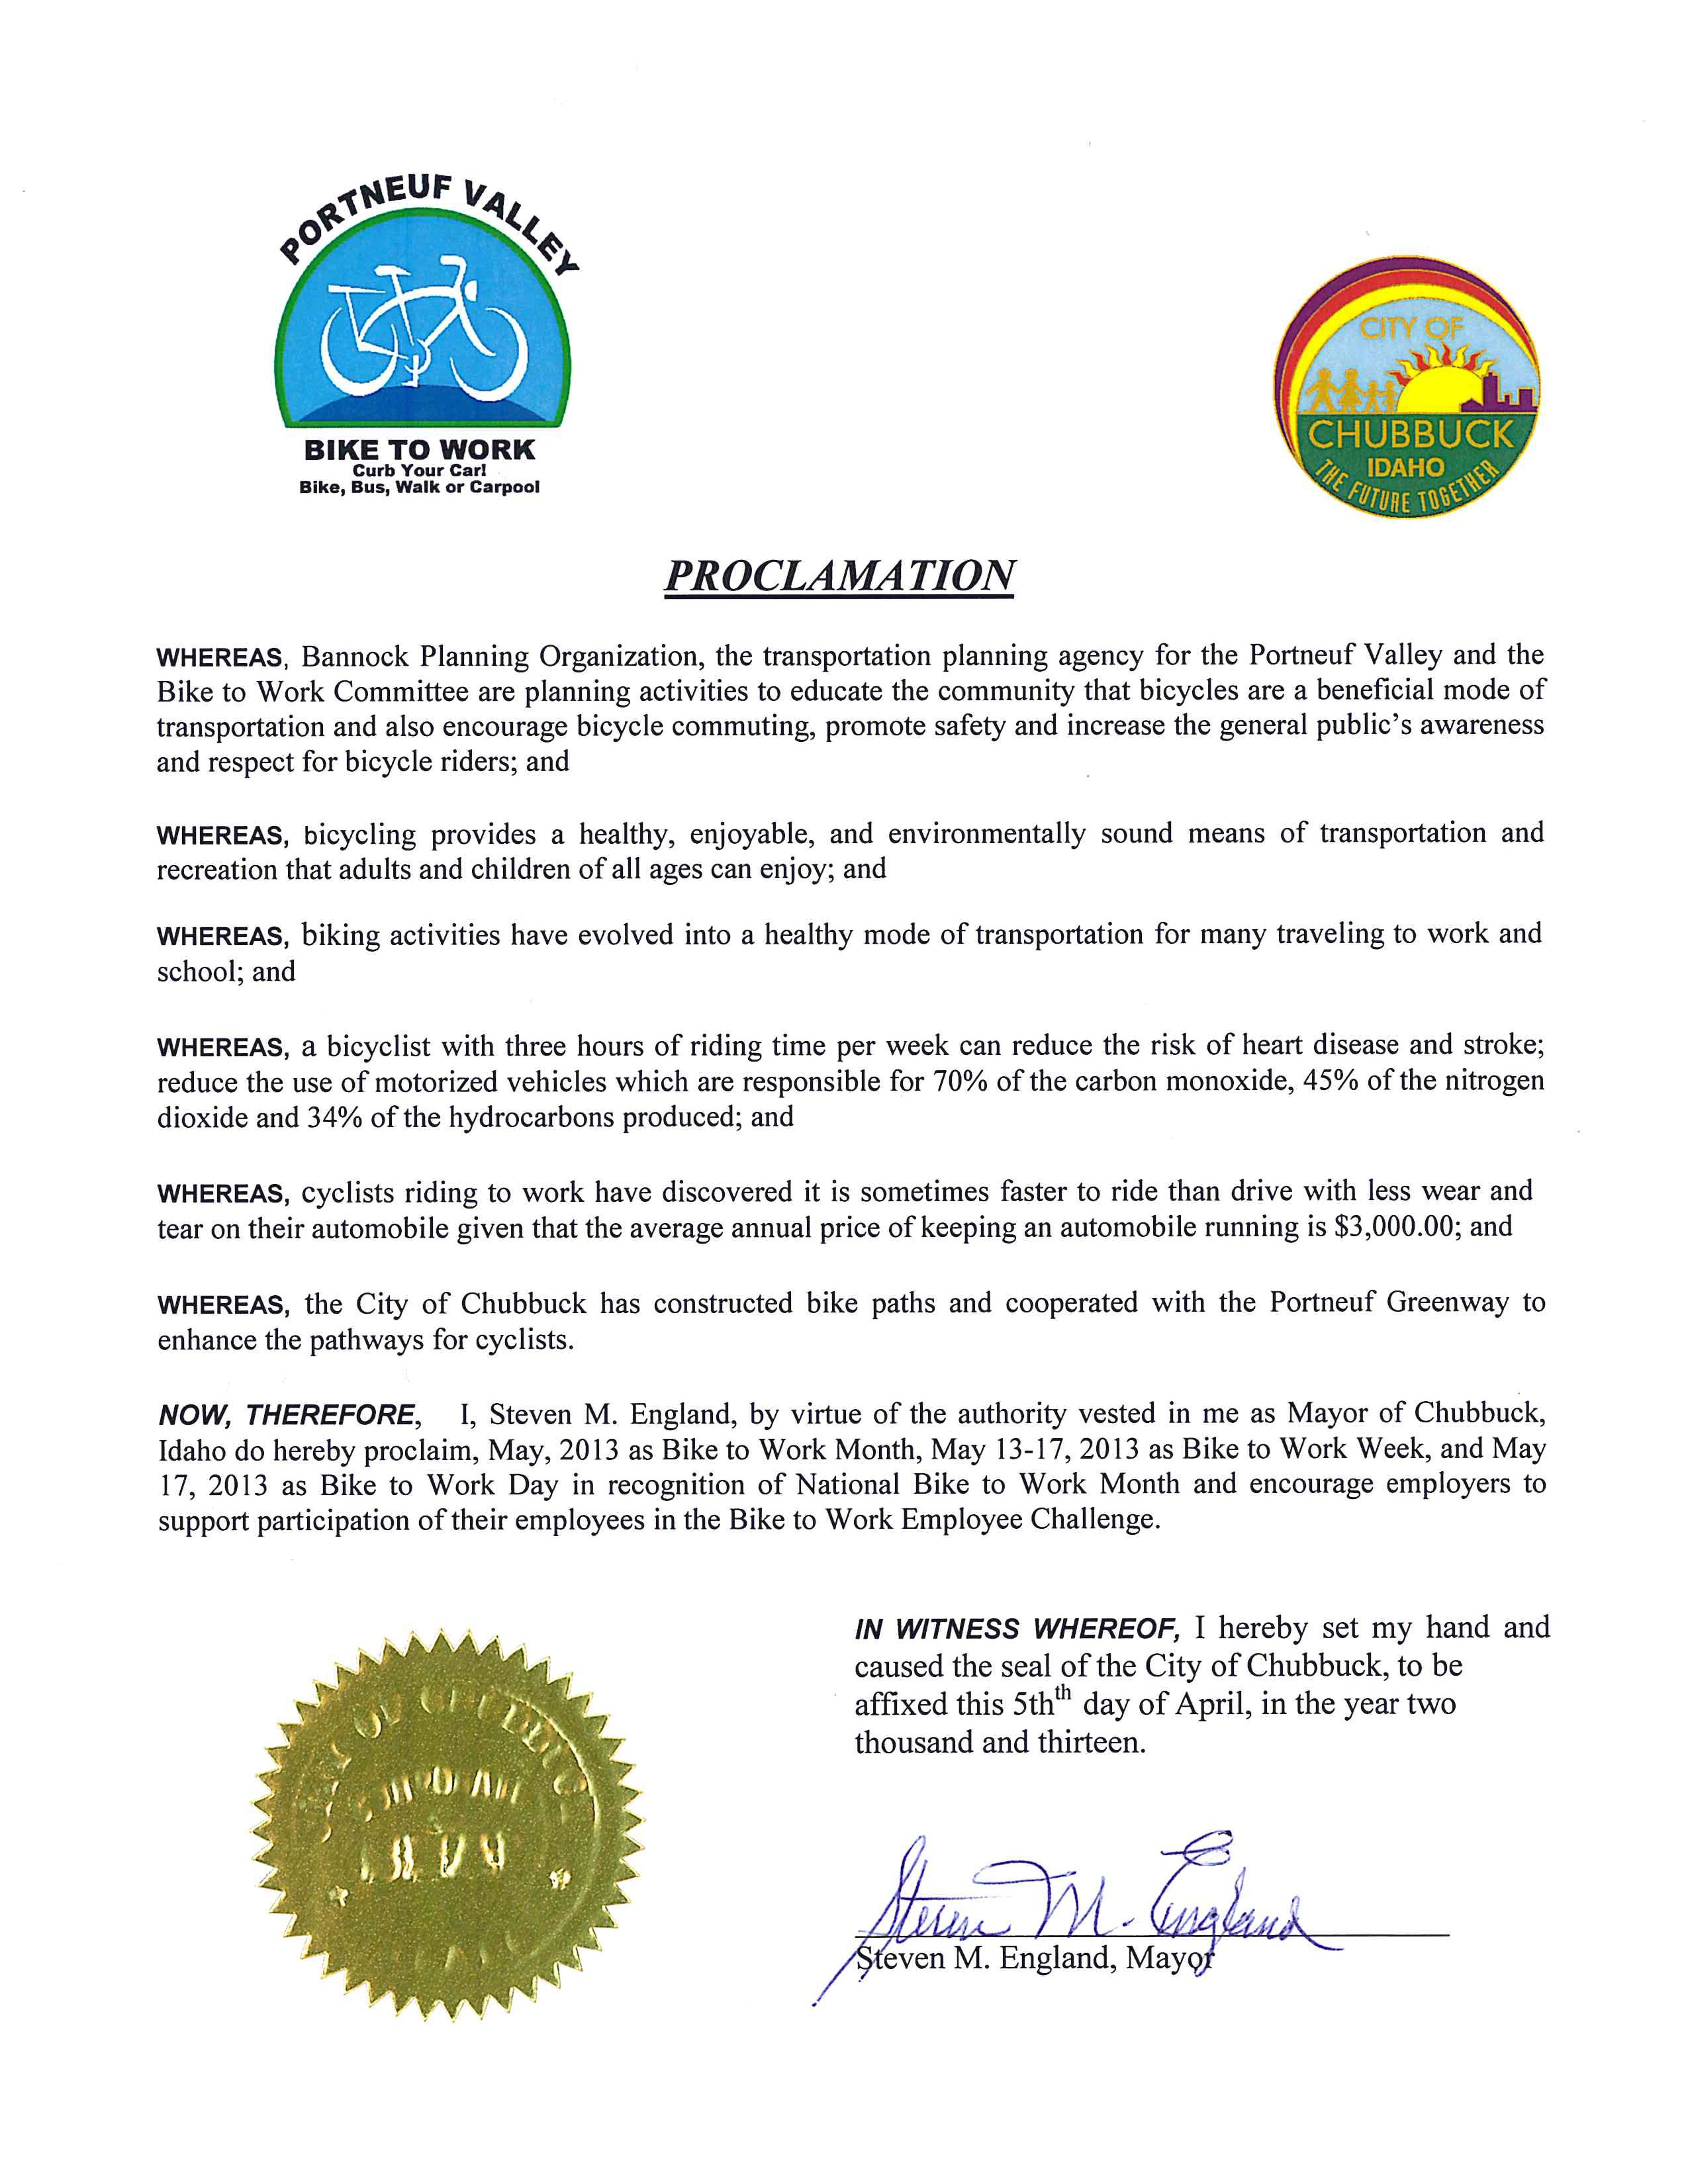 City of Chubbuck Bike to Work Proclamation